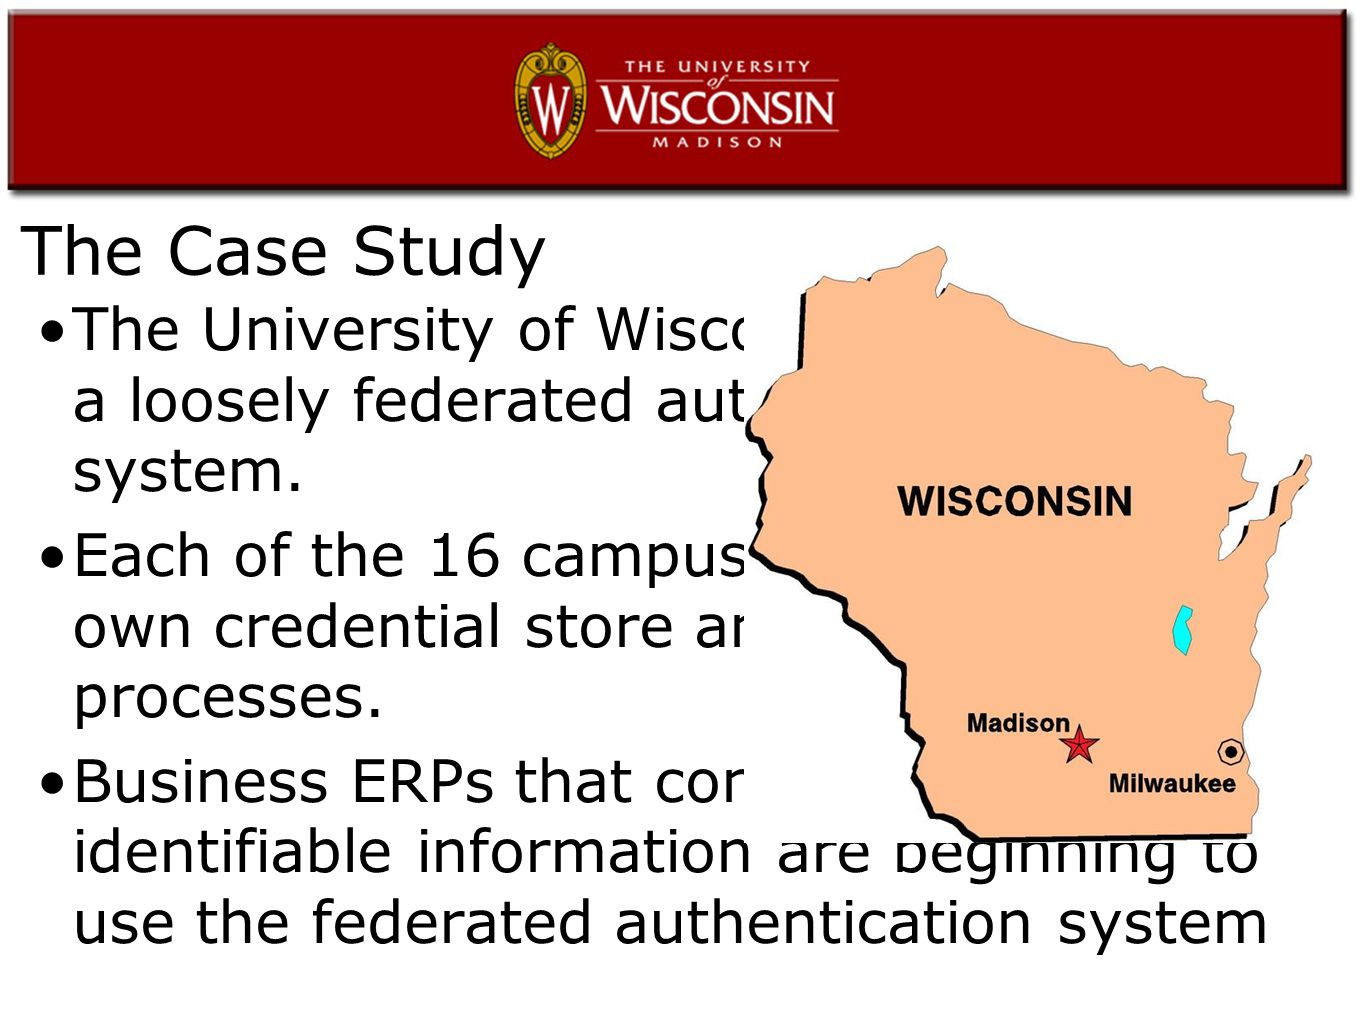 The Case Study The University of Wisconsin System uses a loosely federated authentication system.